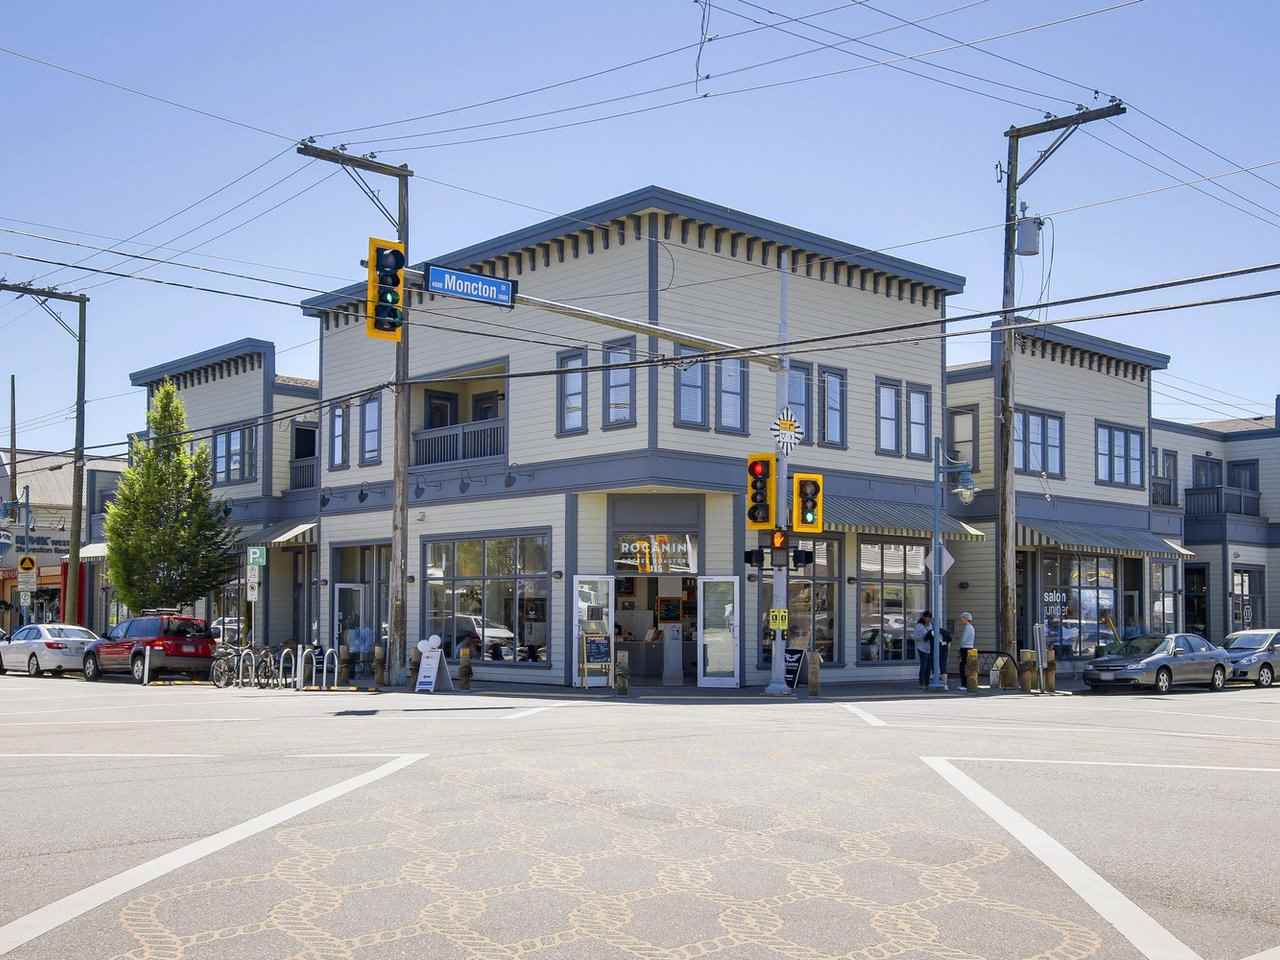 "Main Photo: 205 3900 MONCTON Street in Richmond: Steveston Village Condo for sale in ""THE MUKAI"" : MLS®# R2182177"